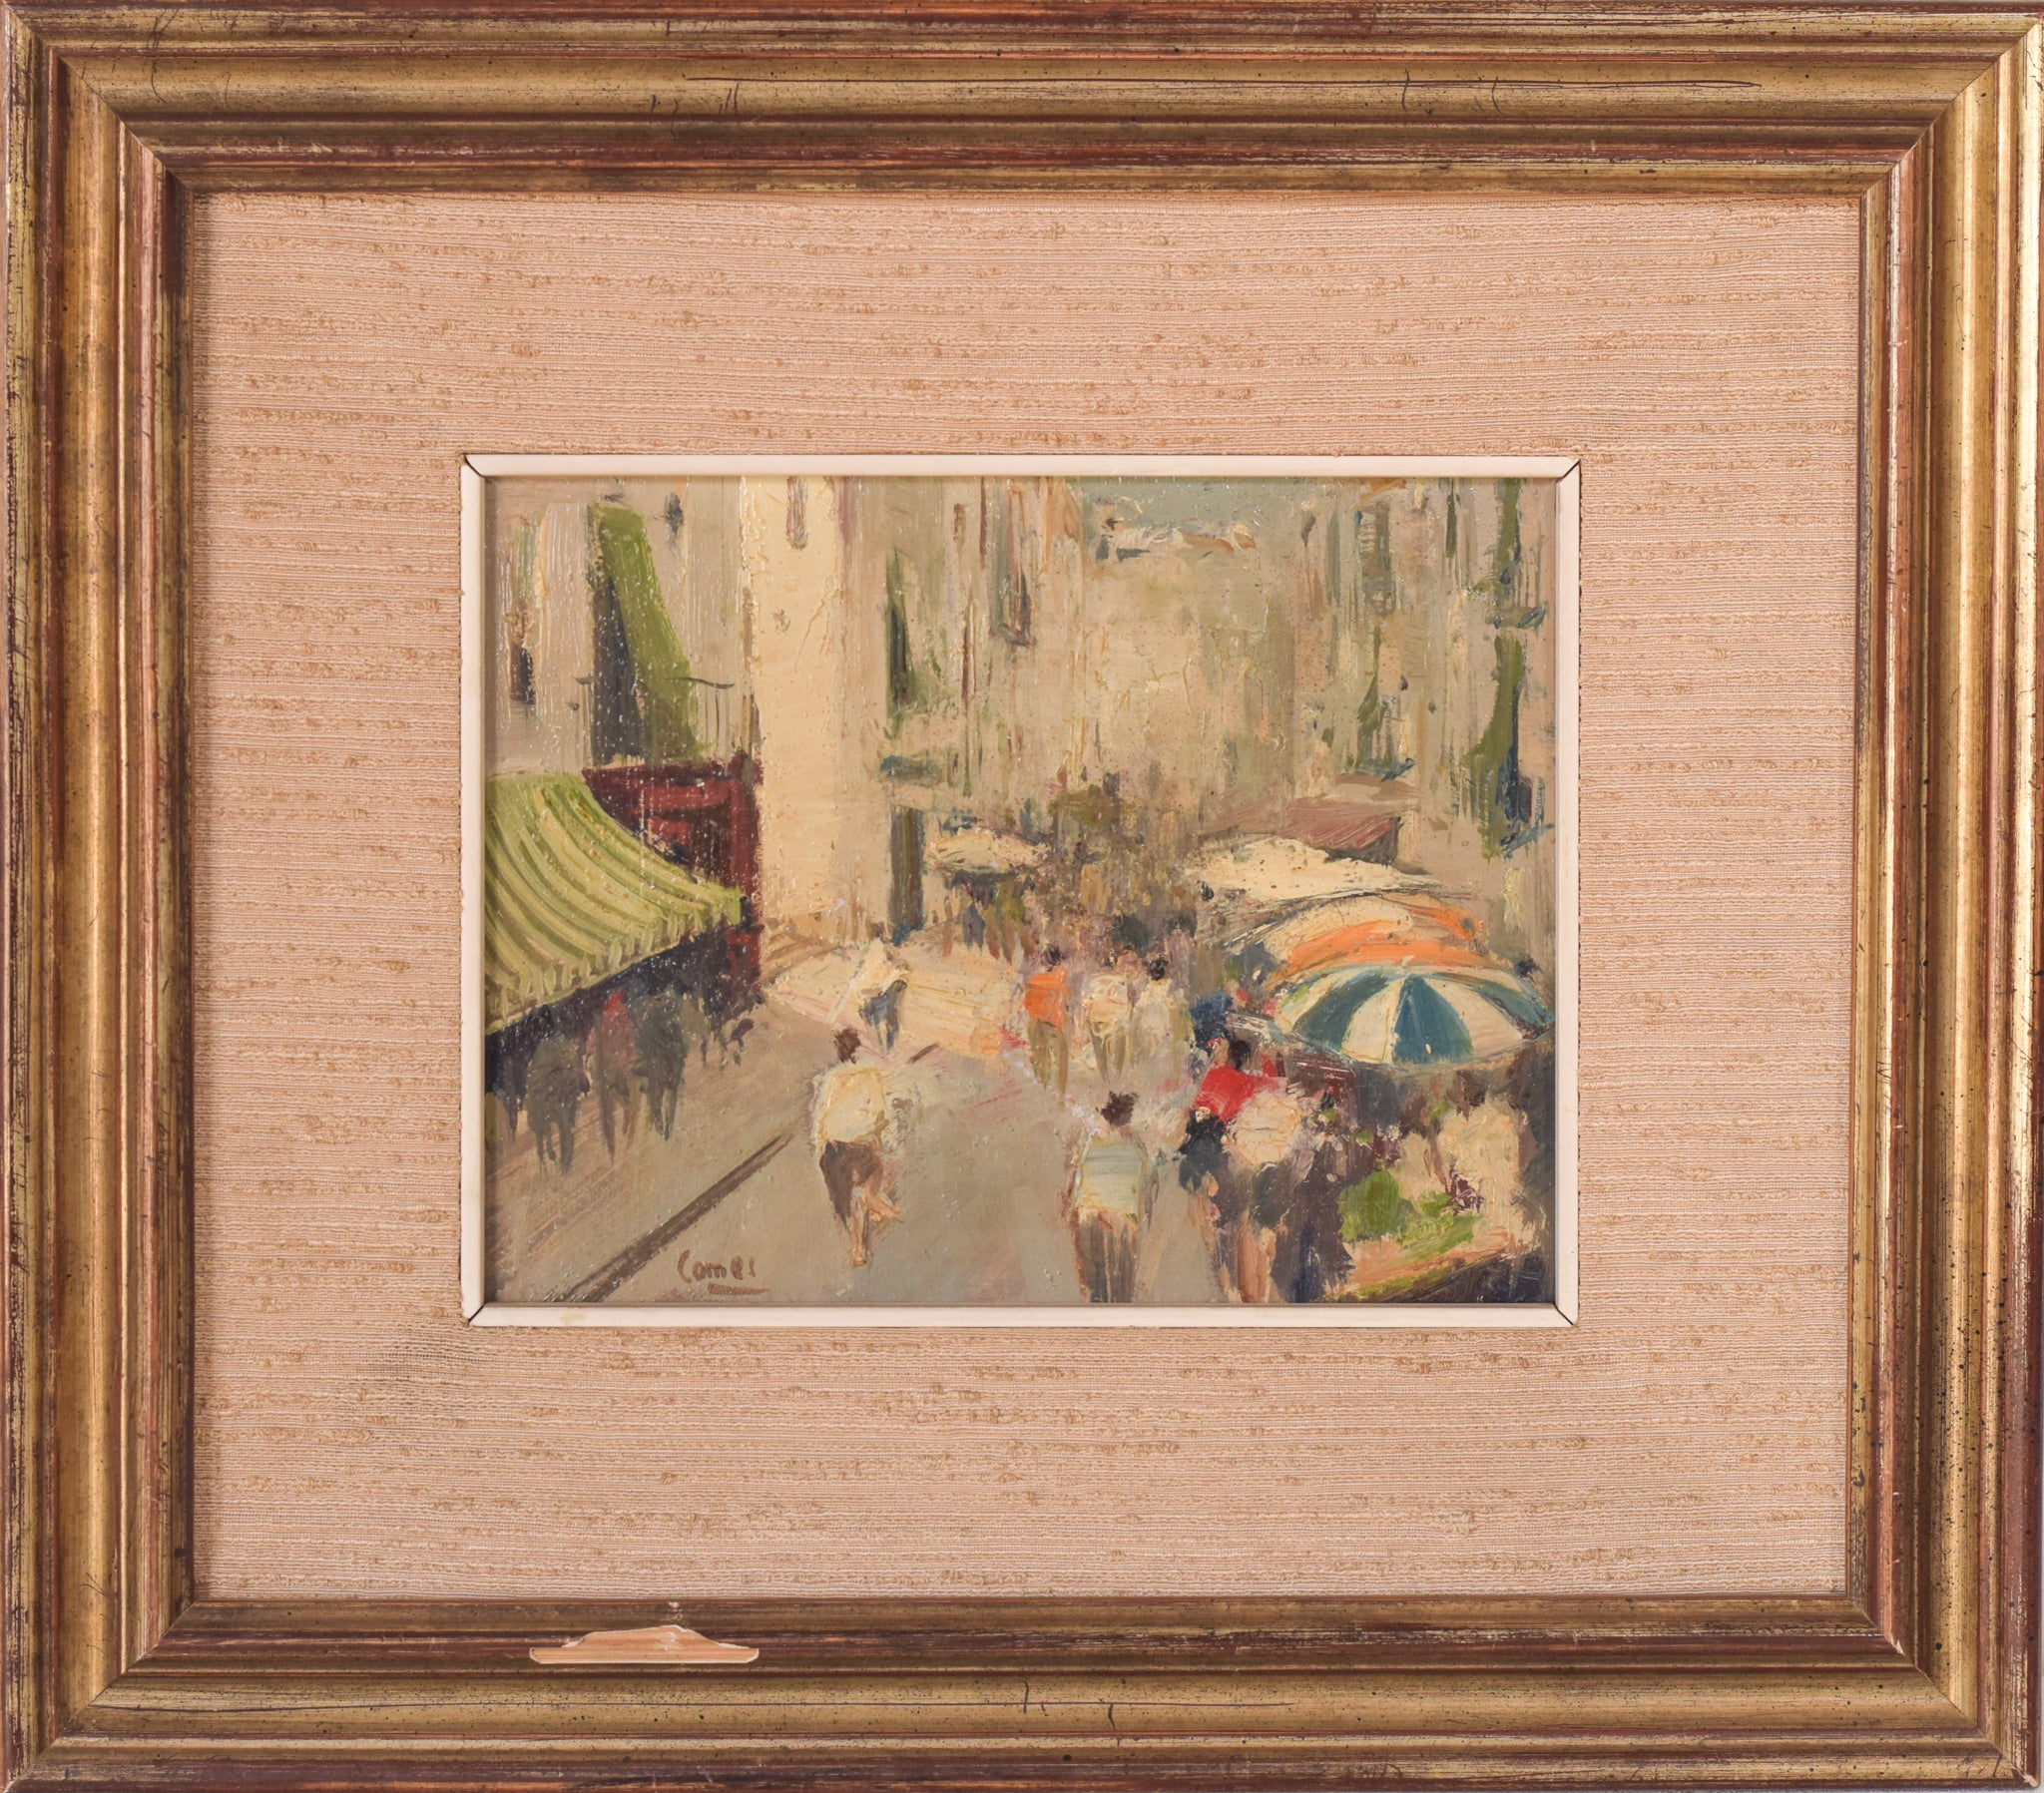 'Mercado' Oil Painting by Joaquim Comes